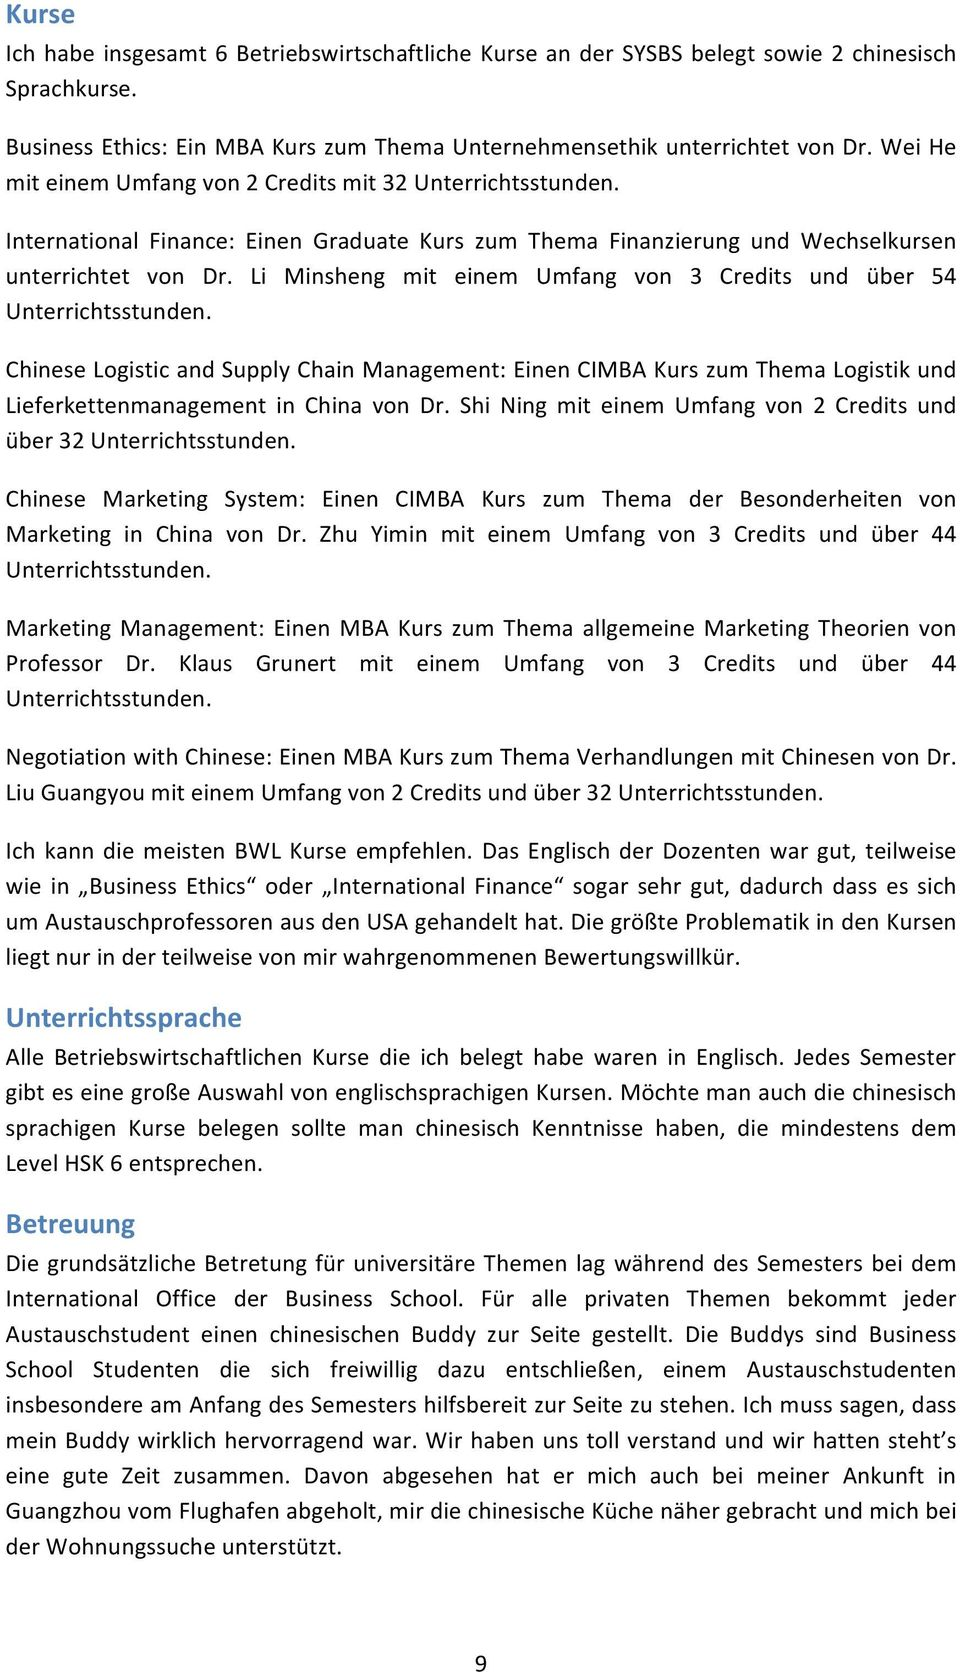 Li Minsheng mit einem Umfang von 3 Credits und über 54 Unterrichtsstunden. Chinese Logistic and Supply Chain Management: Einen CIMBA Kurs zum Thema Logistik und Lieferkettenmanagement in China von Dr.